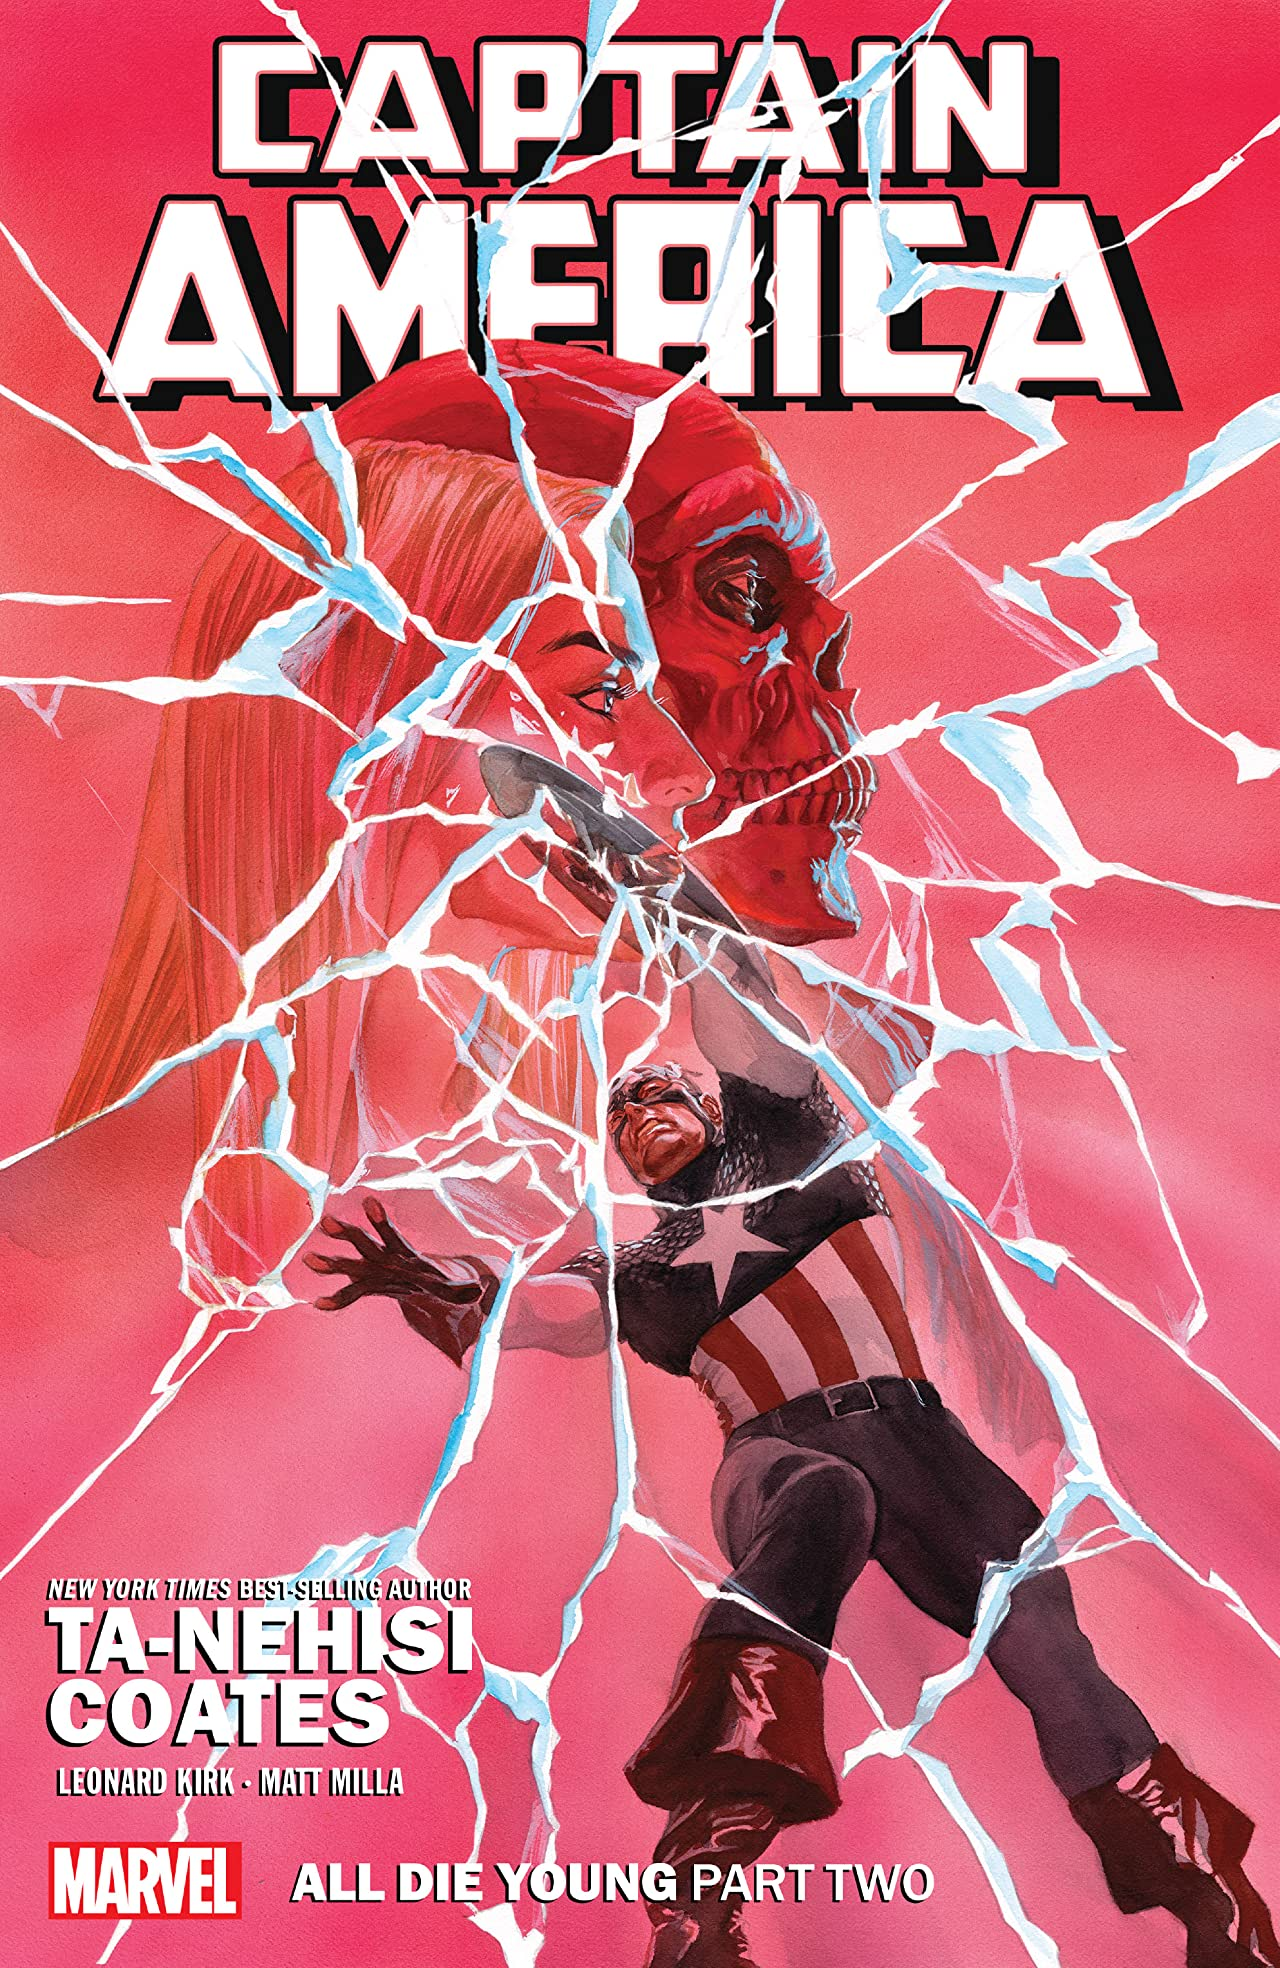 Captain America By Ta-Nehisi Coates Vol. 5: All Die Young Part Two (Trade Paperback)